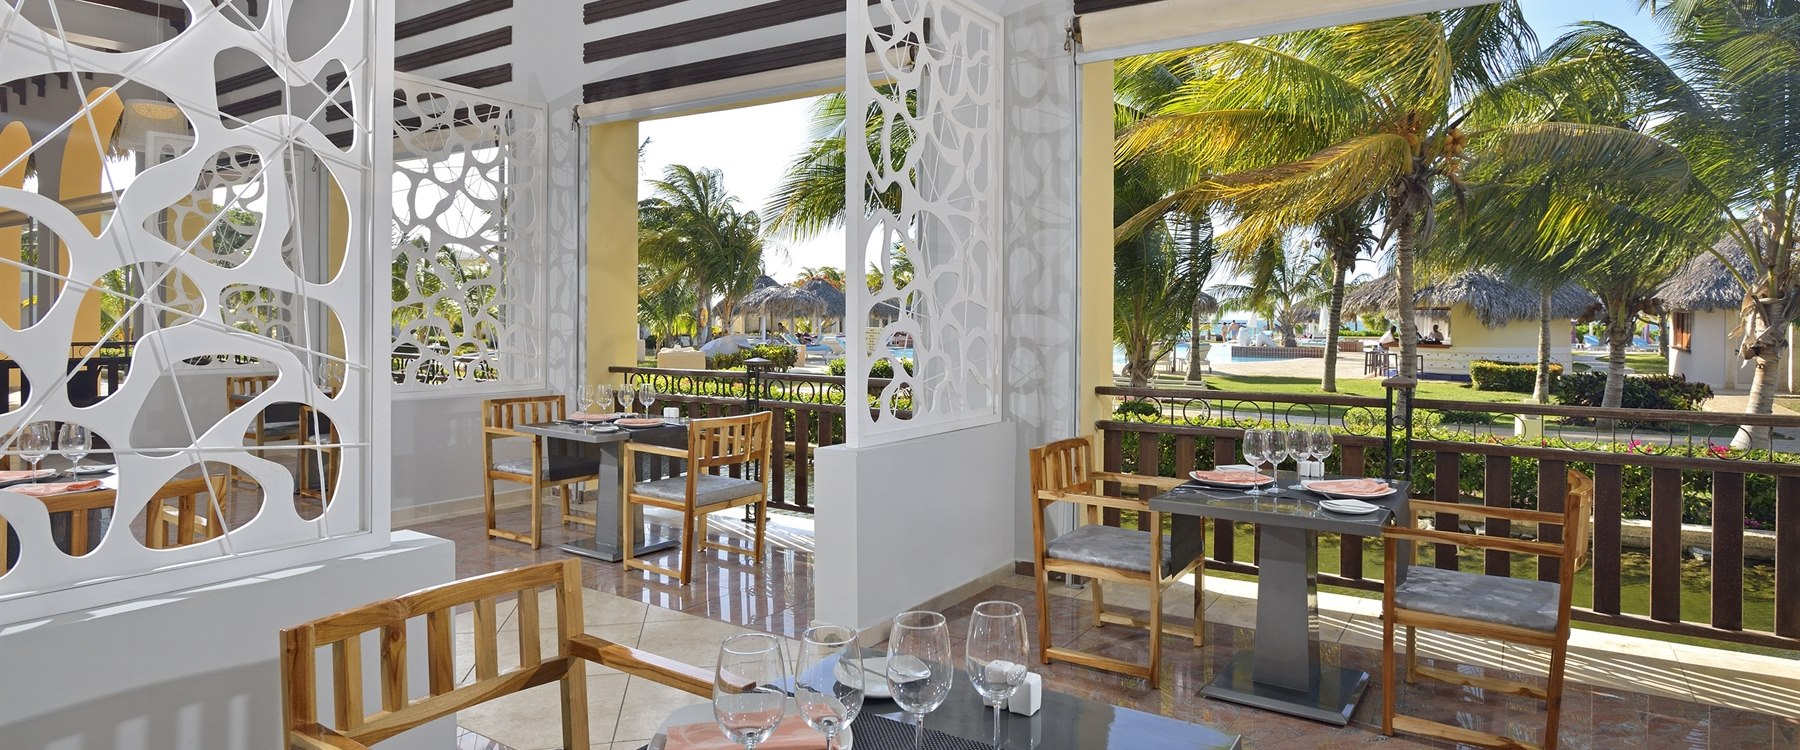 Restaurant Terrace at Paradisus Varadero